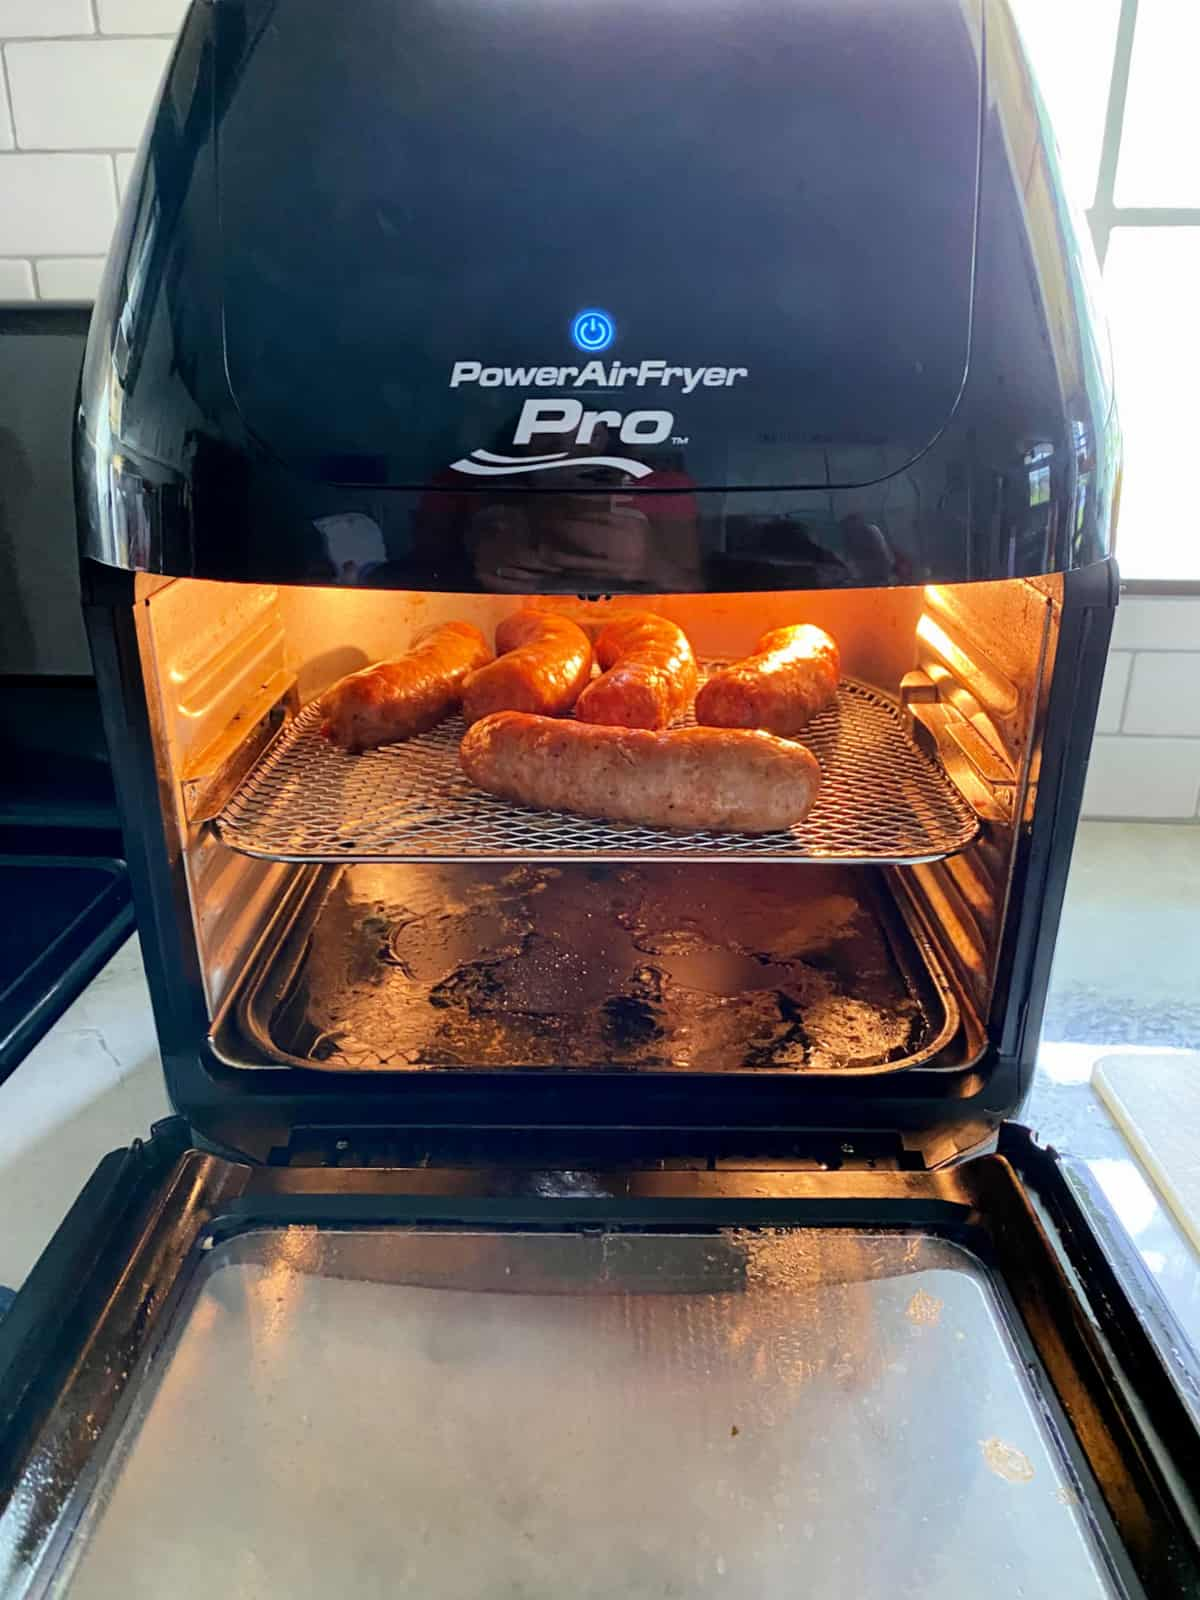 Power Air Fryer Pro with a wire rack full of sausage links inside the oven.